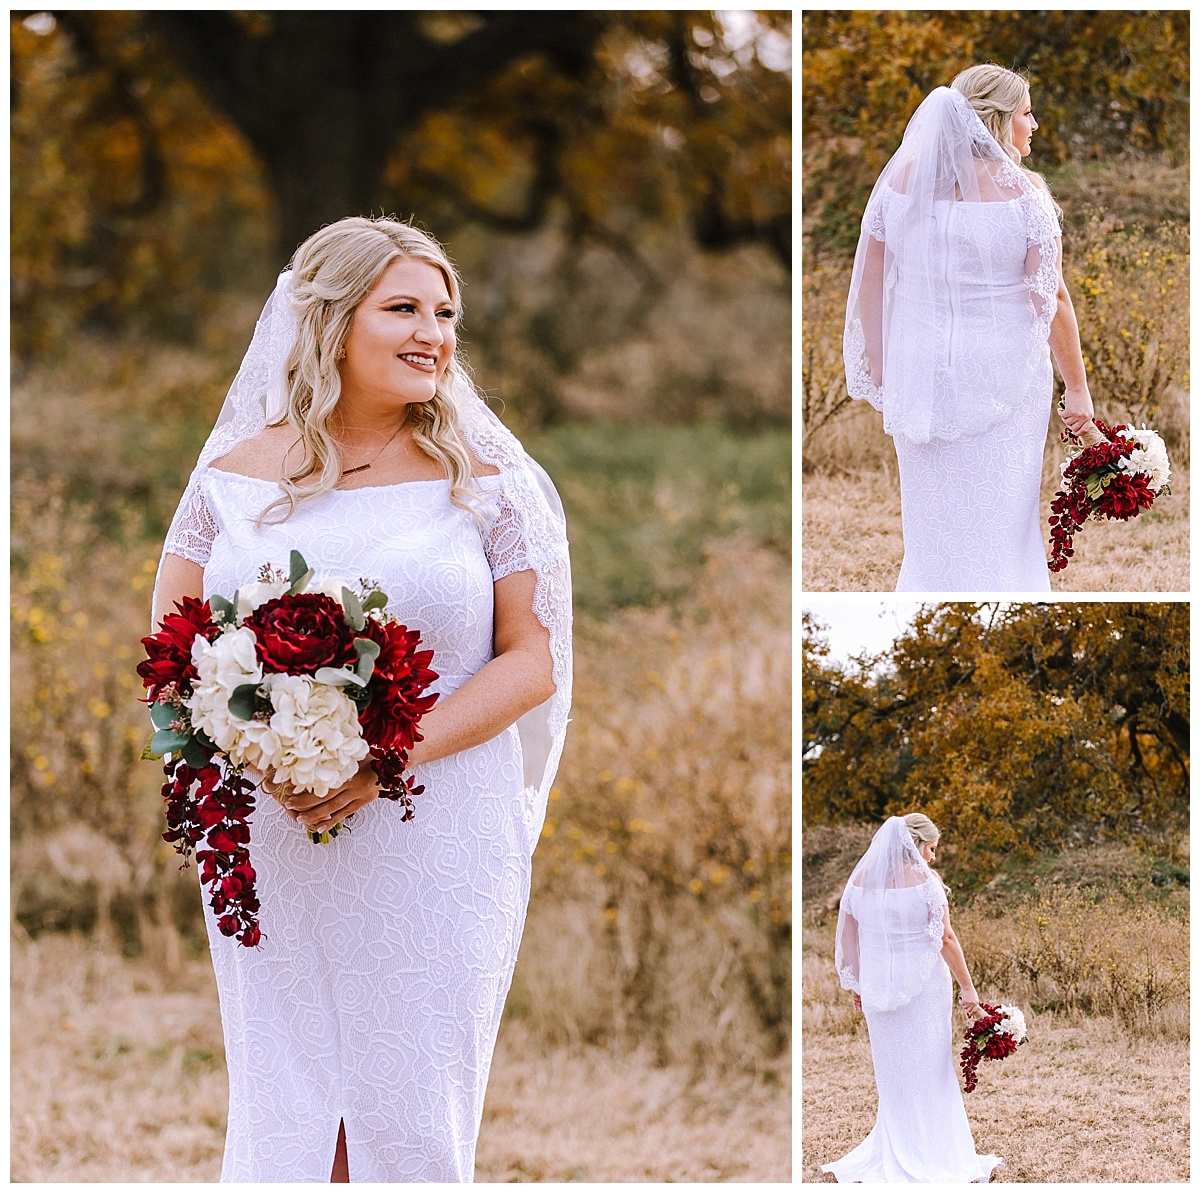 Wedding-Photographer-LaVernia-Texas-Ceremony-Under-the-Trees-Bride-Groom-Fall-McDonald-Carly-Barton-Photography_0023.jpg